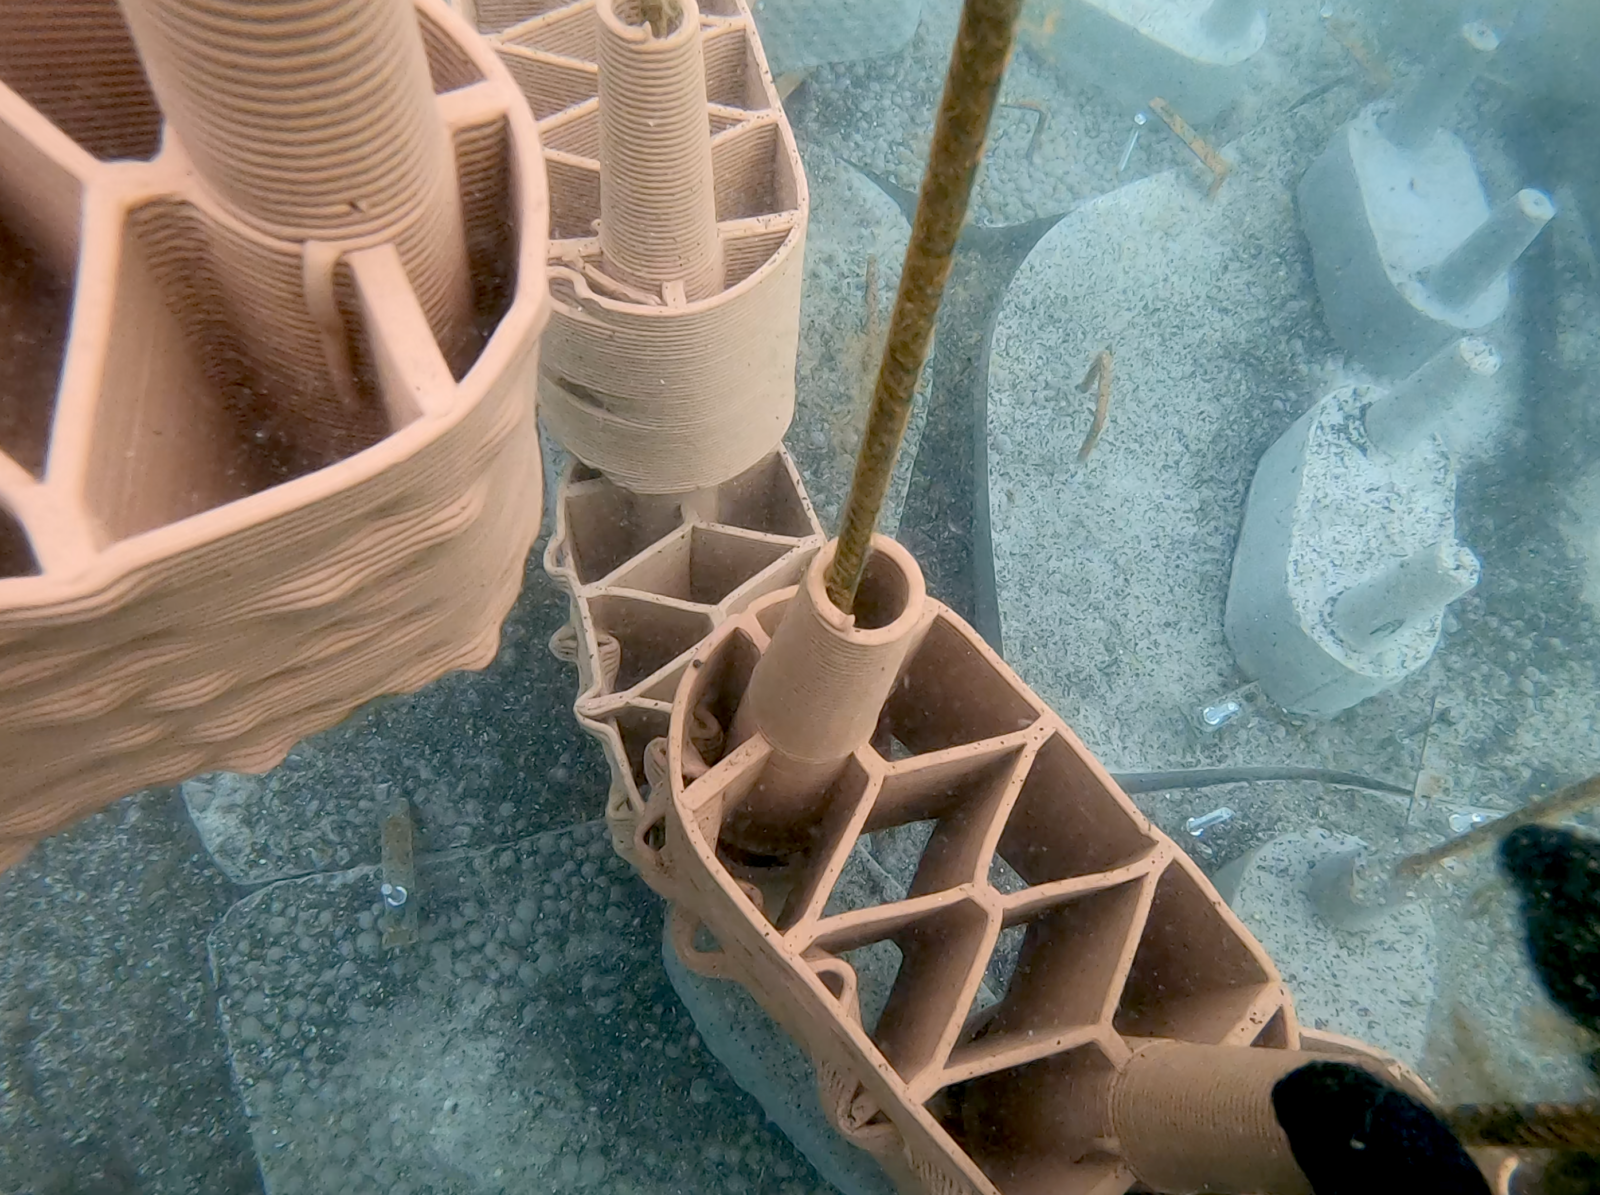 Detail of the clay prototypes during installation under water. © Marie Griesmar/rrreefs